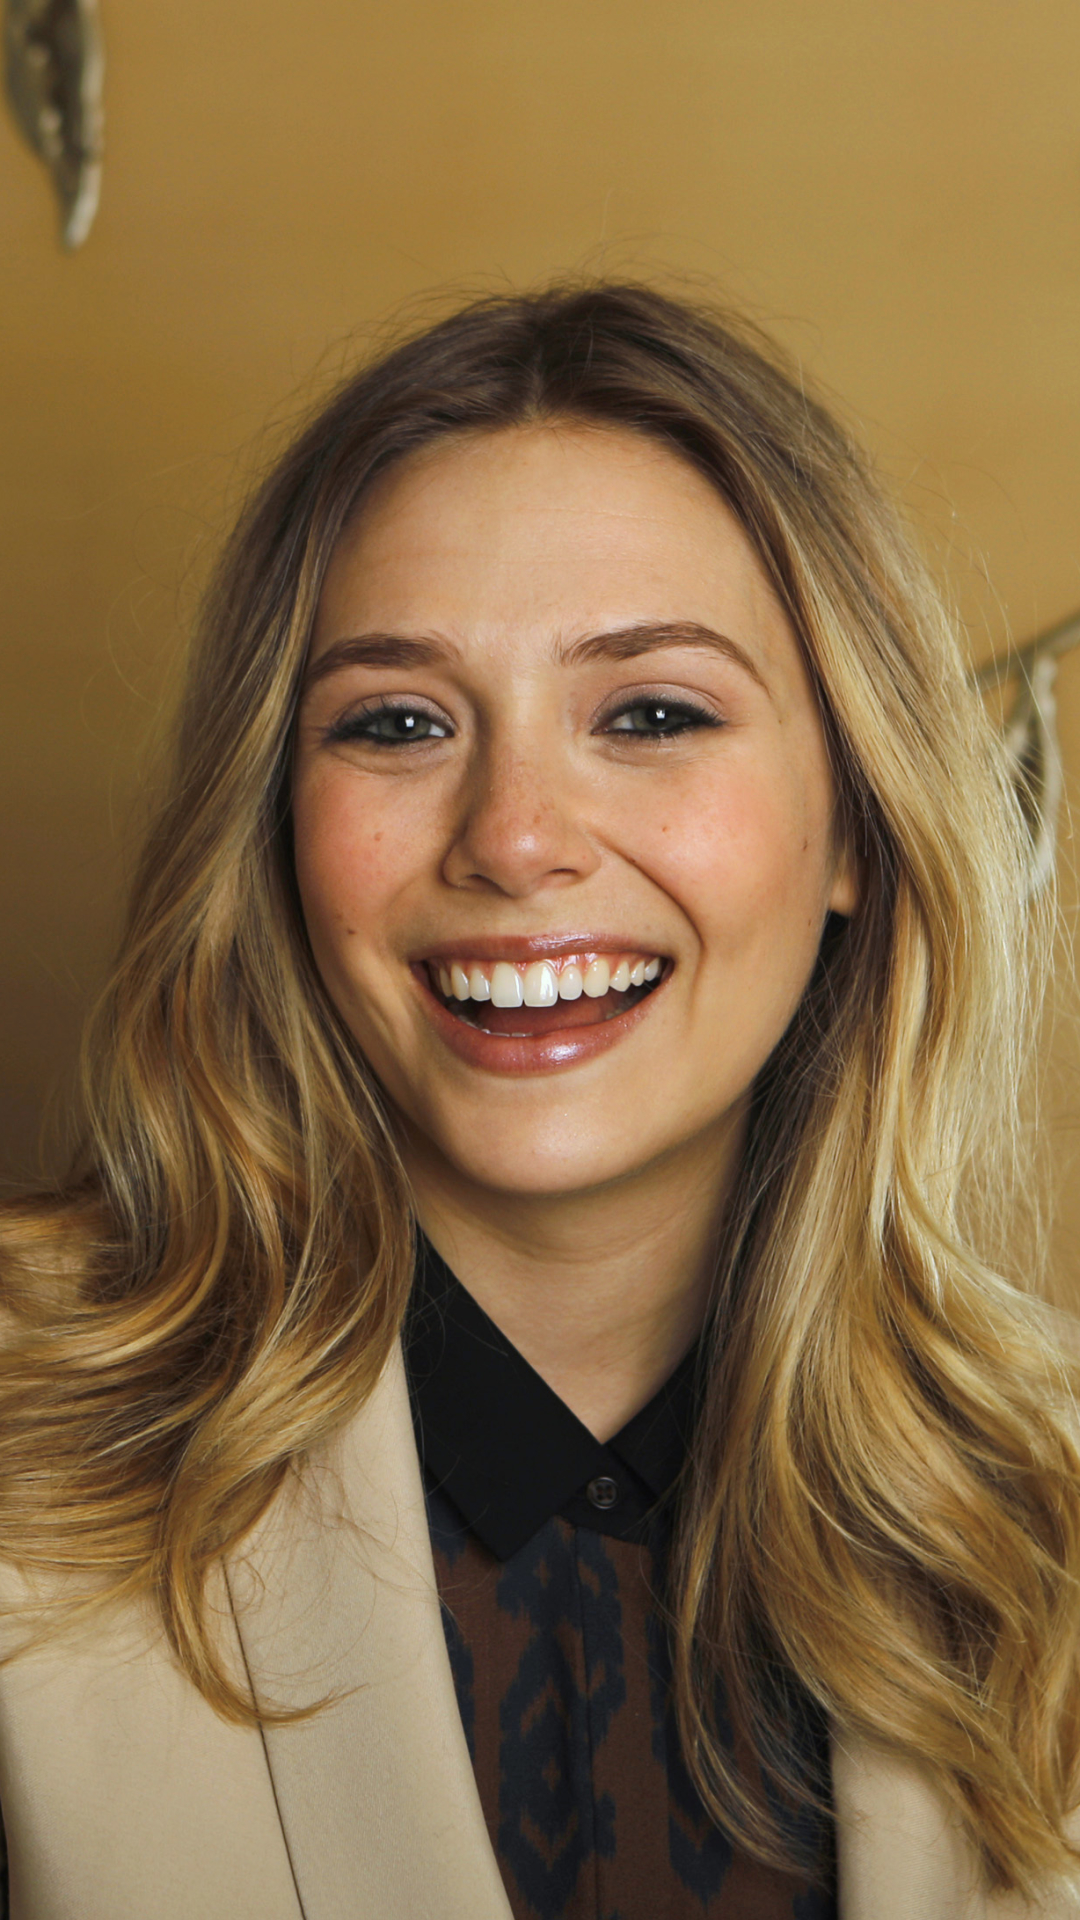 Celebrity Elizabeth Olsen 1080x1920 Mobile Wallpaper